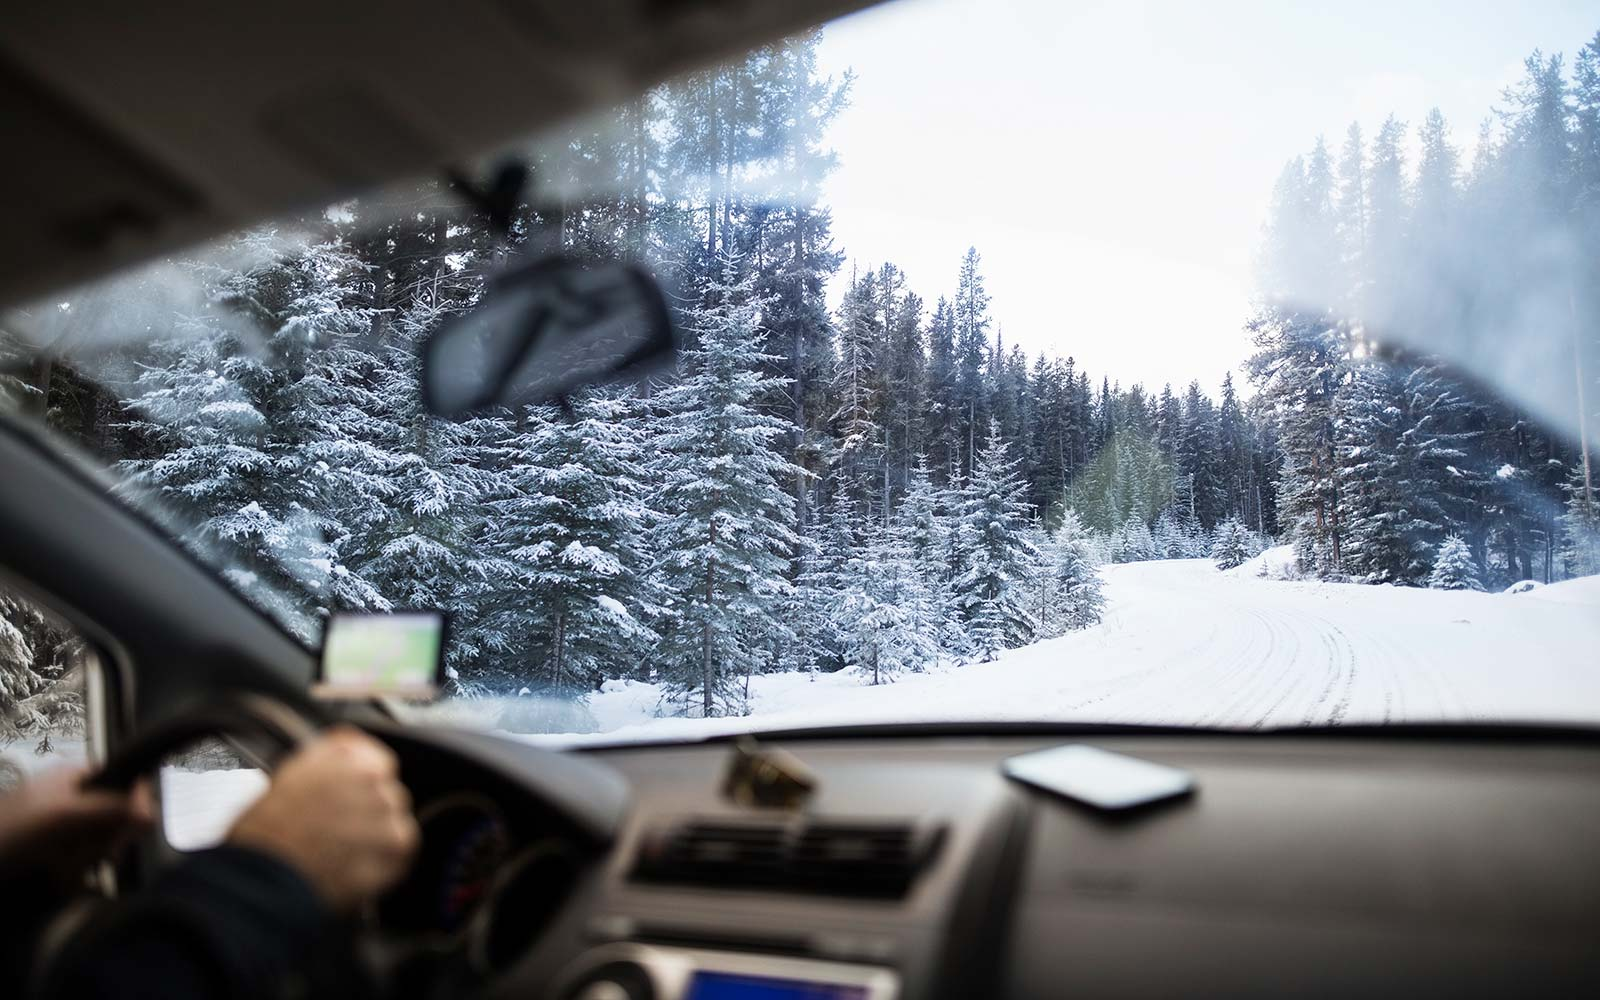 winter storm snow weather car travel holidays thanksgiving